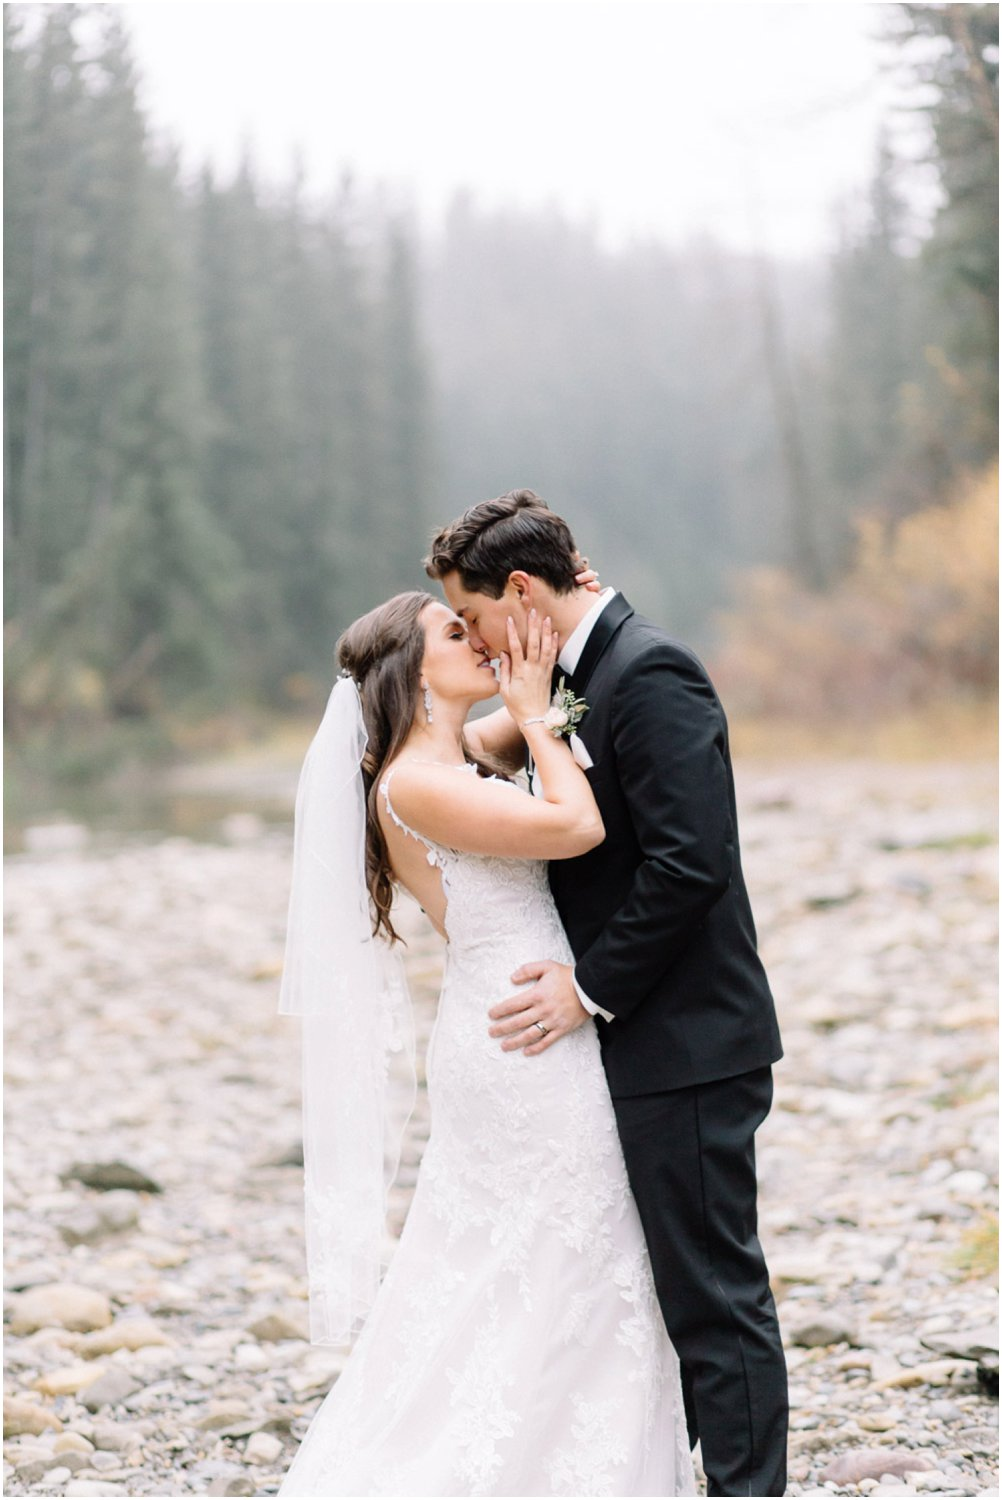 Wedding at fish creek park - Calgary Wedding Photographers_5202